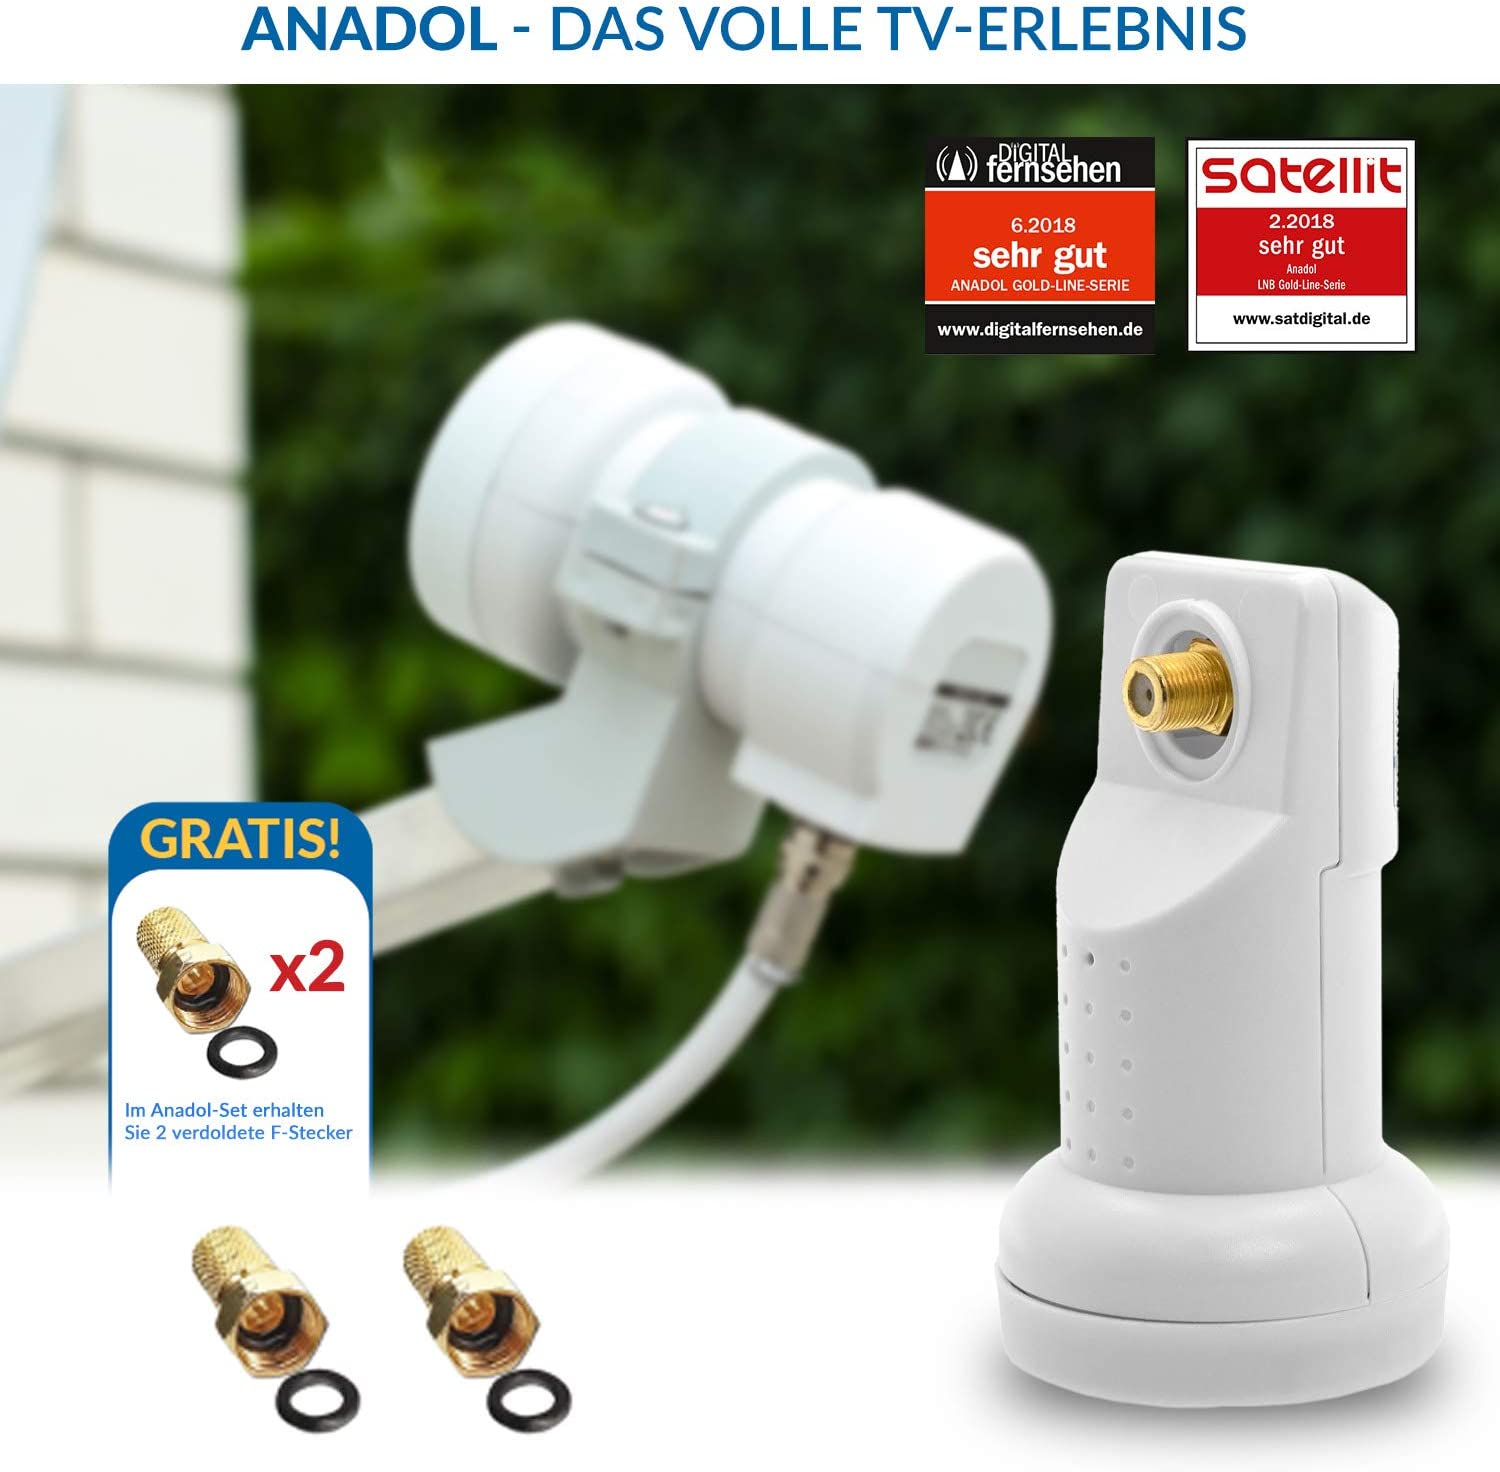 LNB and multi-switch set: Anadol Gold Line 5//4 digital multi-switch for 1 satellite and 4 outputs//receivers Anadol Quattro LNB test very good 17 gold-plated F-connectors free test 2X very good